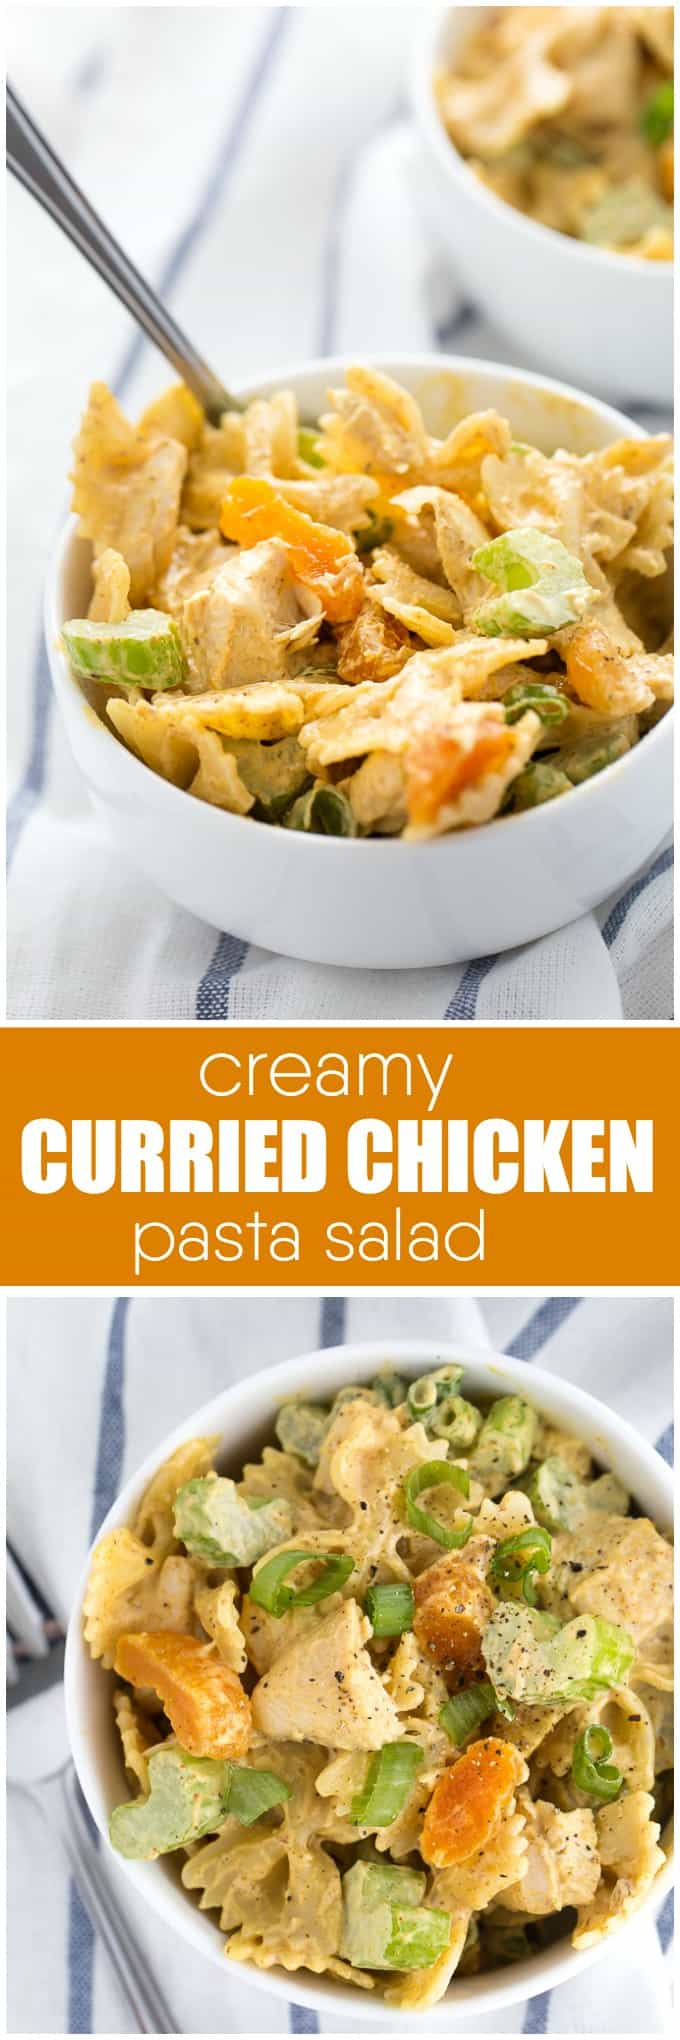 Creamy Curried Chicken Pasta Salad Recipe - Bring some spice to your next cookout. This creamy pasta salad is packed with celery and apricots and smothered in a delicious curry sauce.